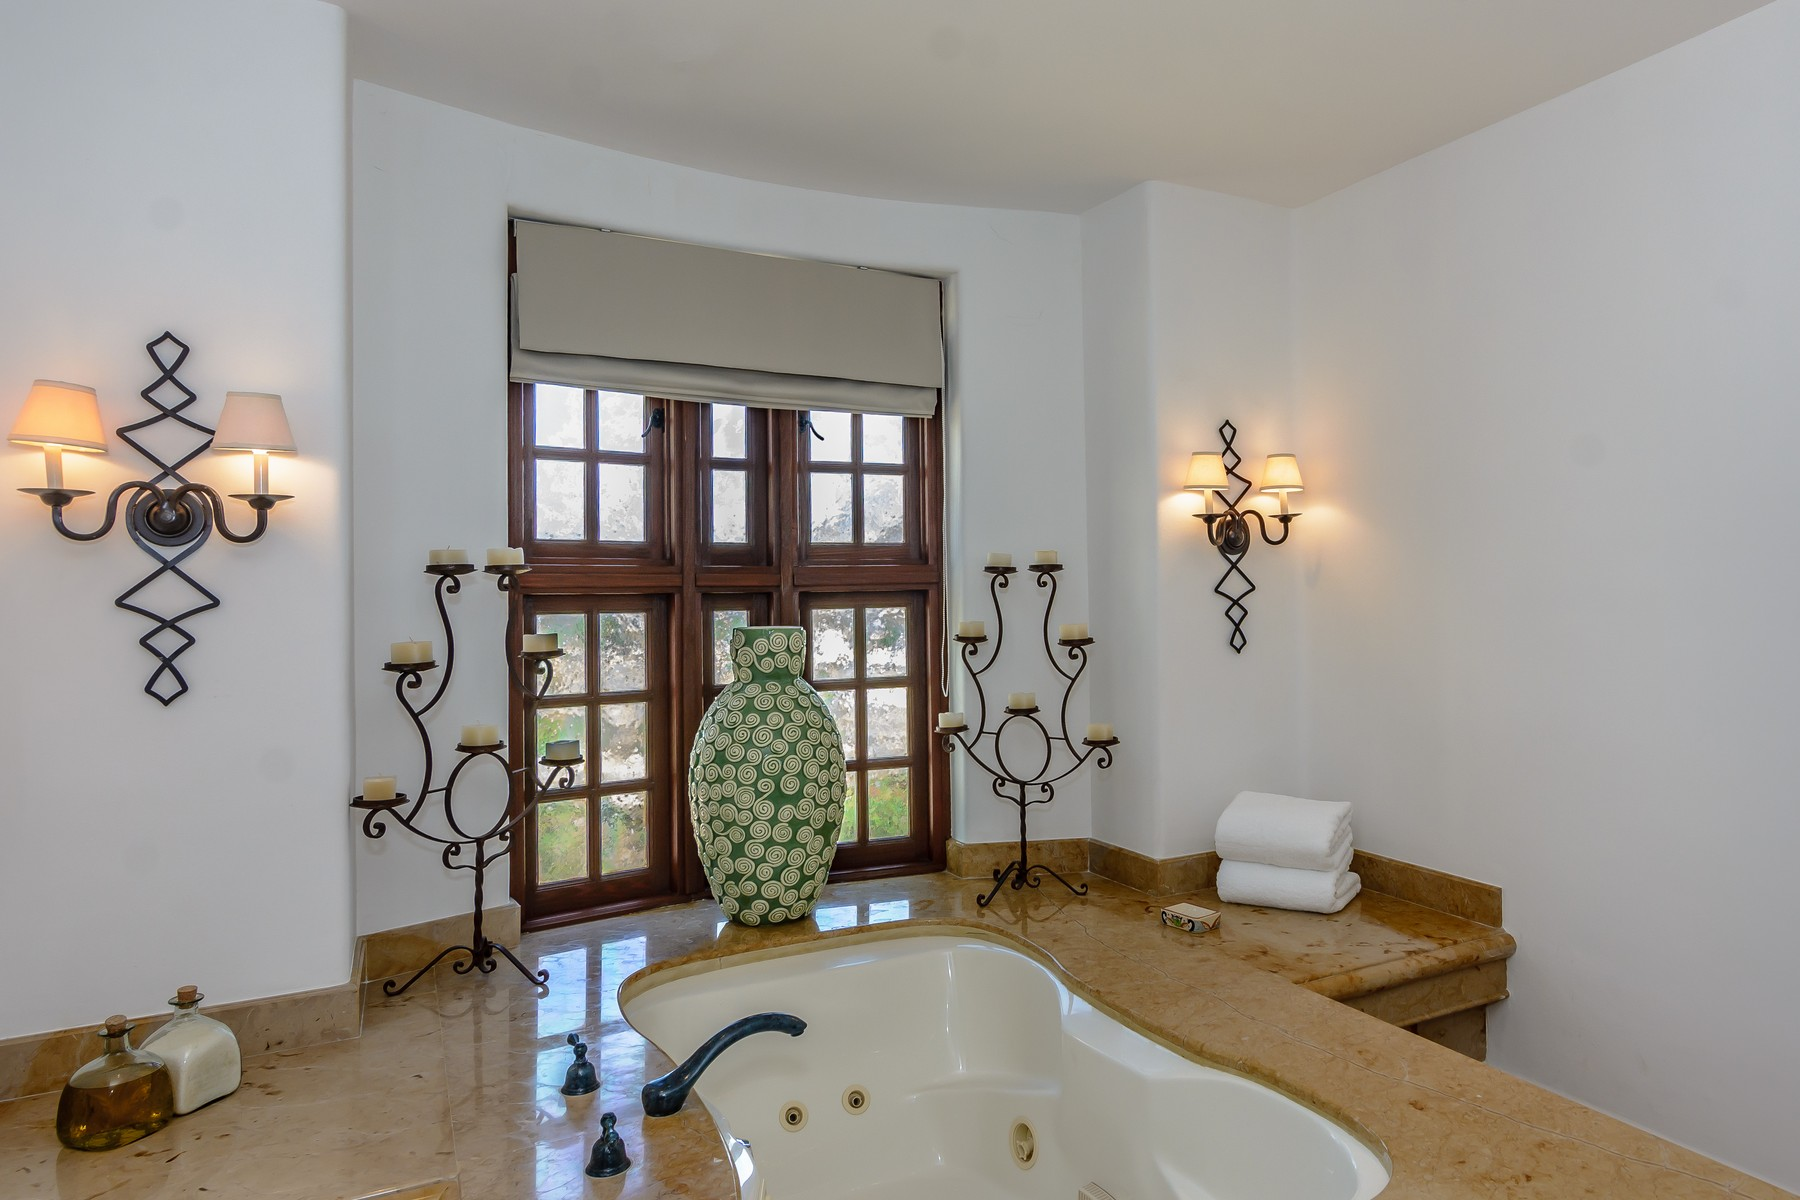 Additional photo for property listing at Residence 4202 Las Ventanas al Paraiso Carretera Transpeninsular MK 19.5 San Jose Del Cabo, Baja California Sur 23400 Mexico